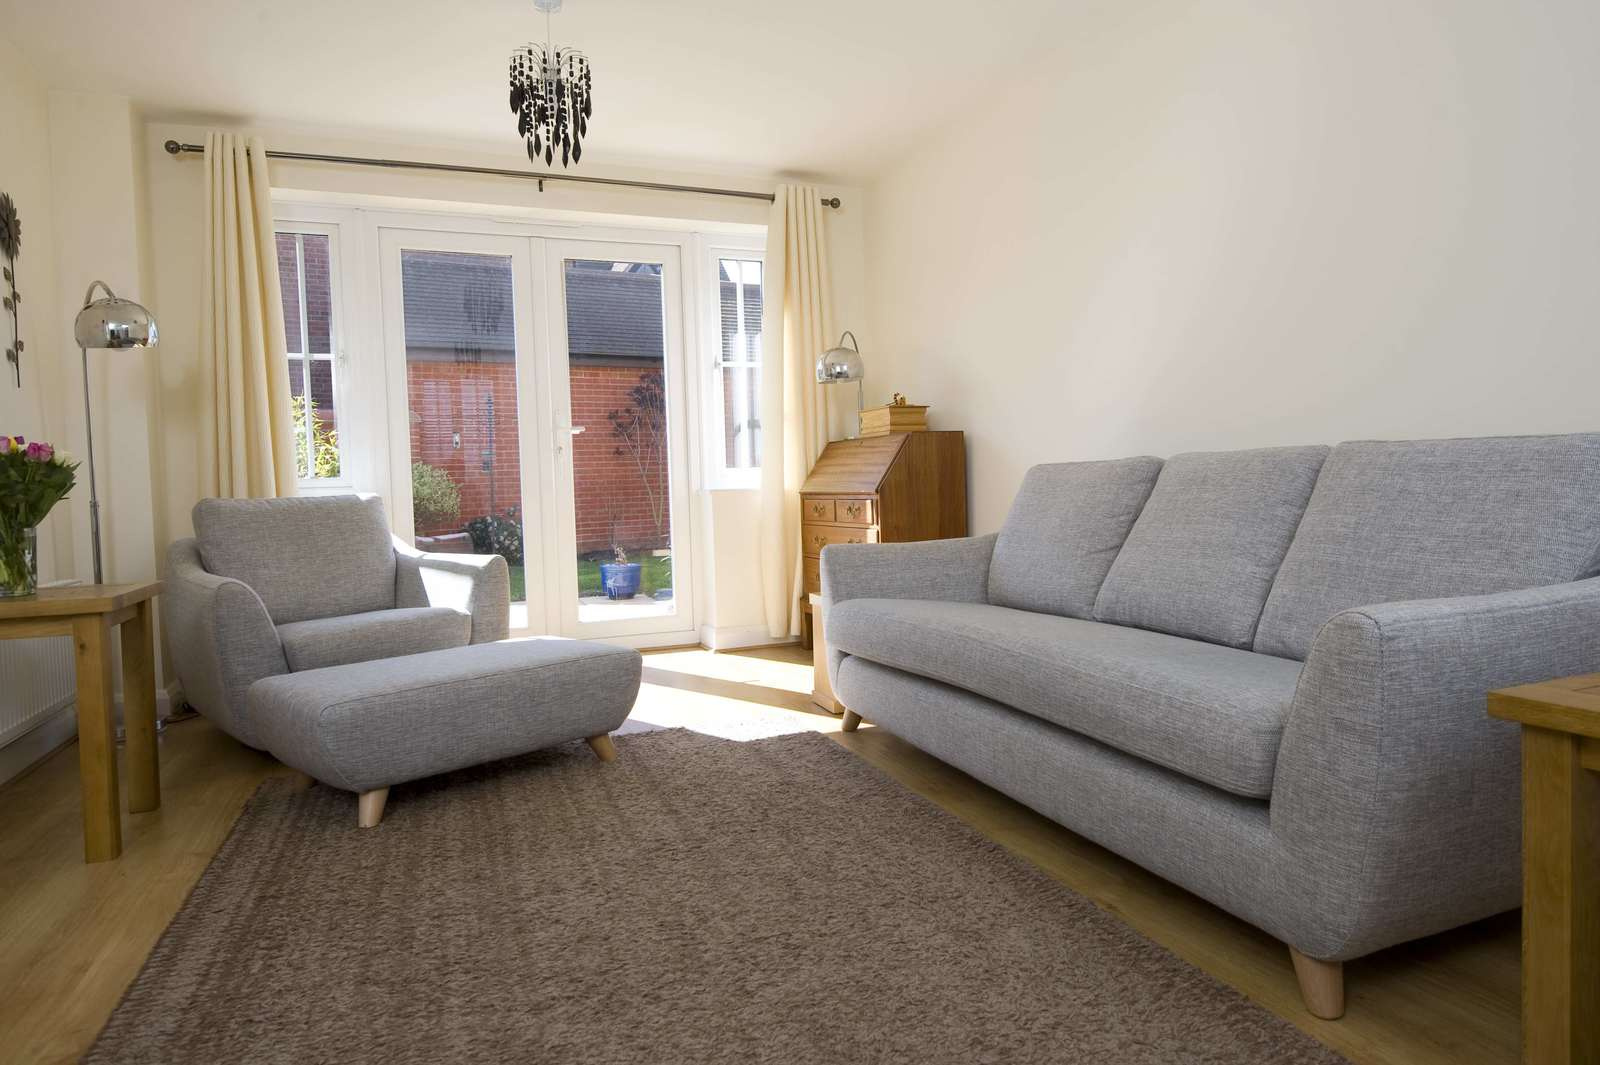 3 bed house for sale in Woodpecker Close, Great Barford  - Property Image 12